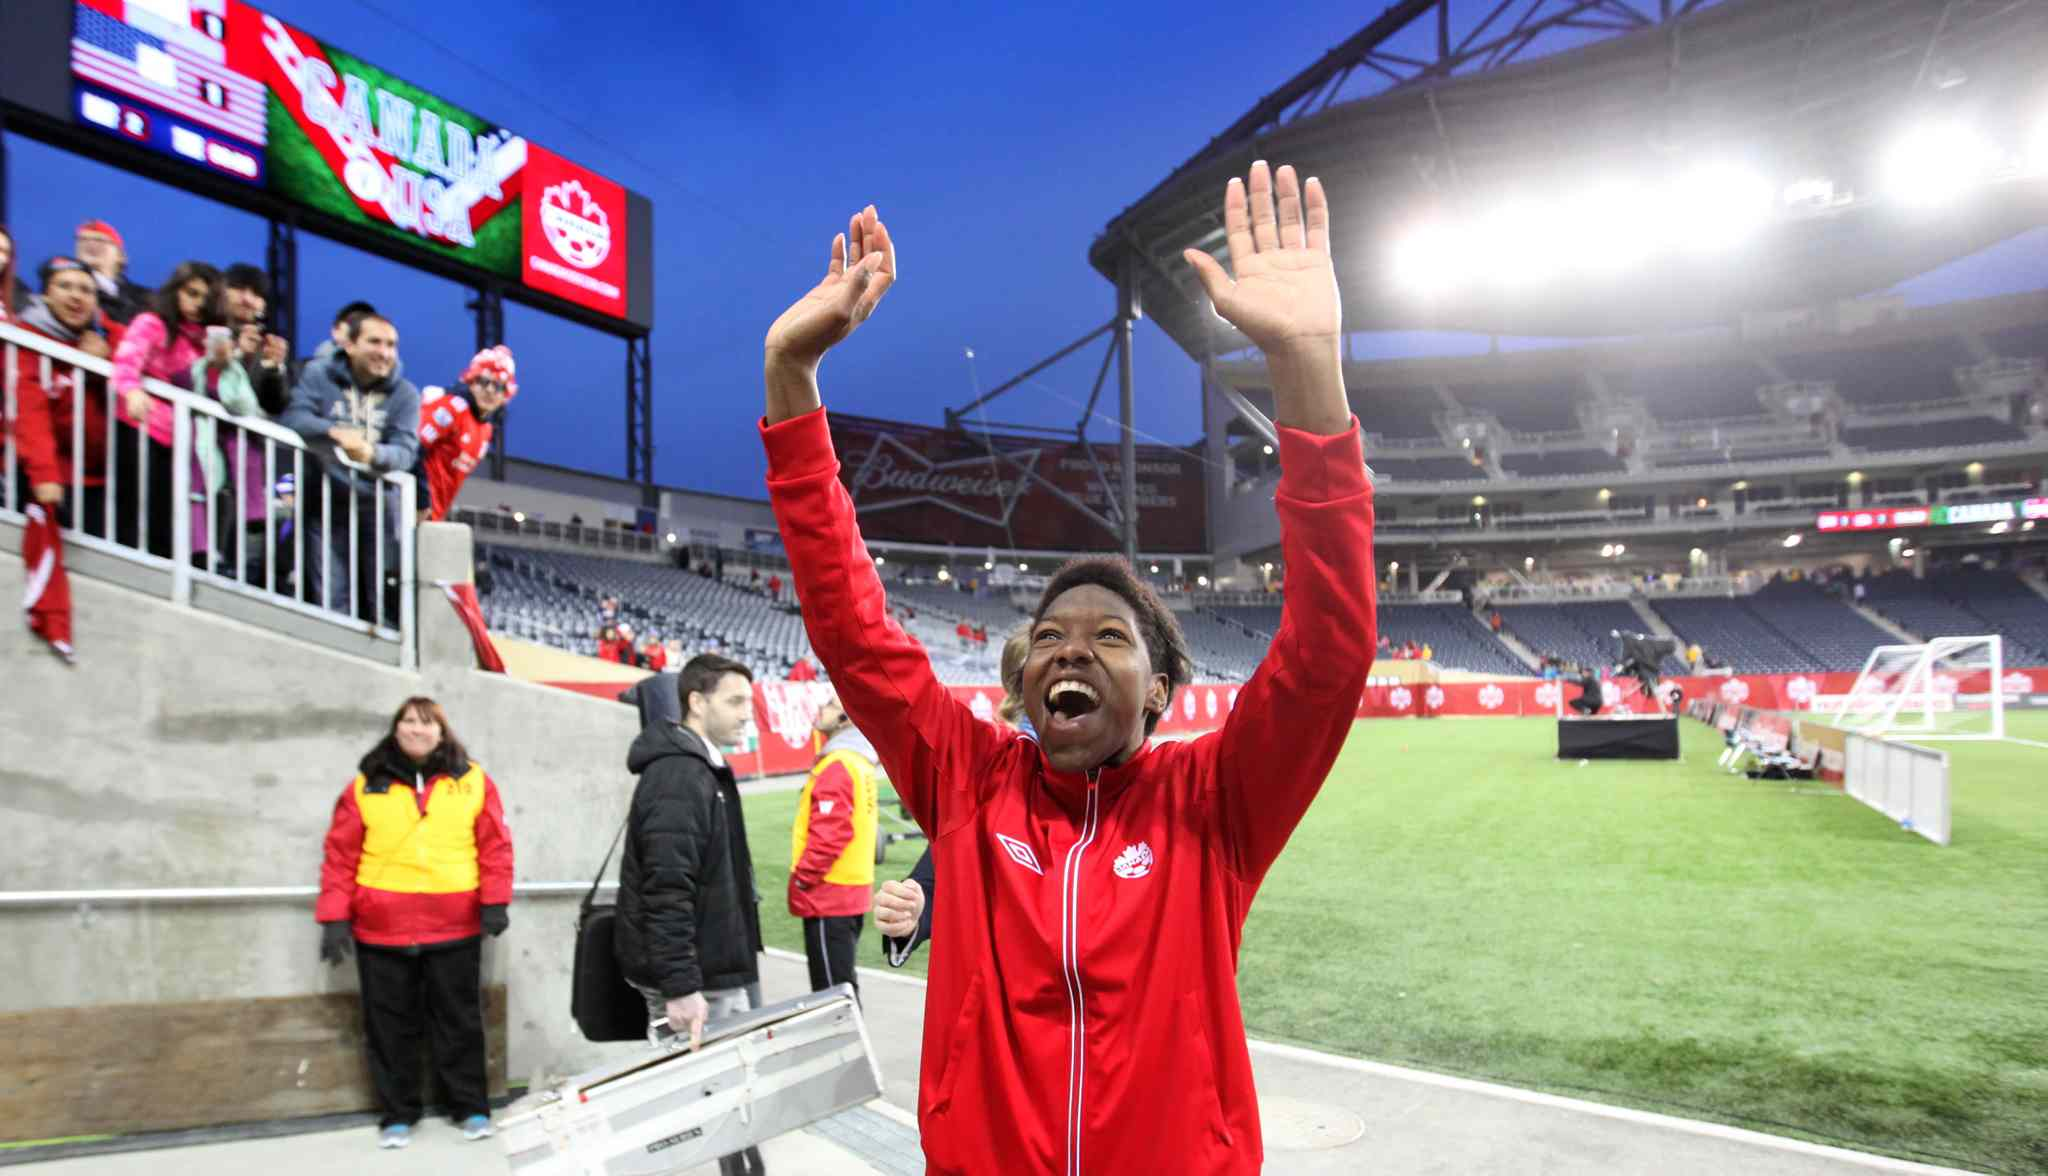 Canada's Kadeisha Buchanan waves and smiles to the crowd as she leaves the field after scoring Canada's lone goal against the U.S. in the women's international soccer match at Investors Group Field Thursday evening. The teams tied 1-1.